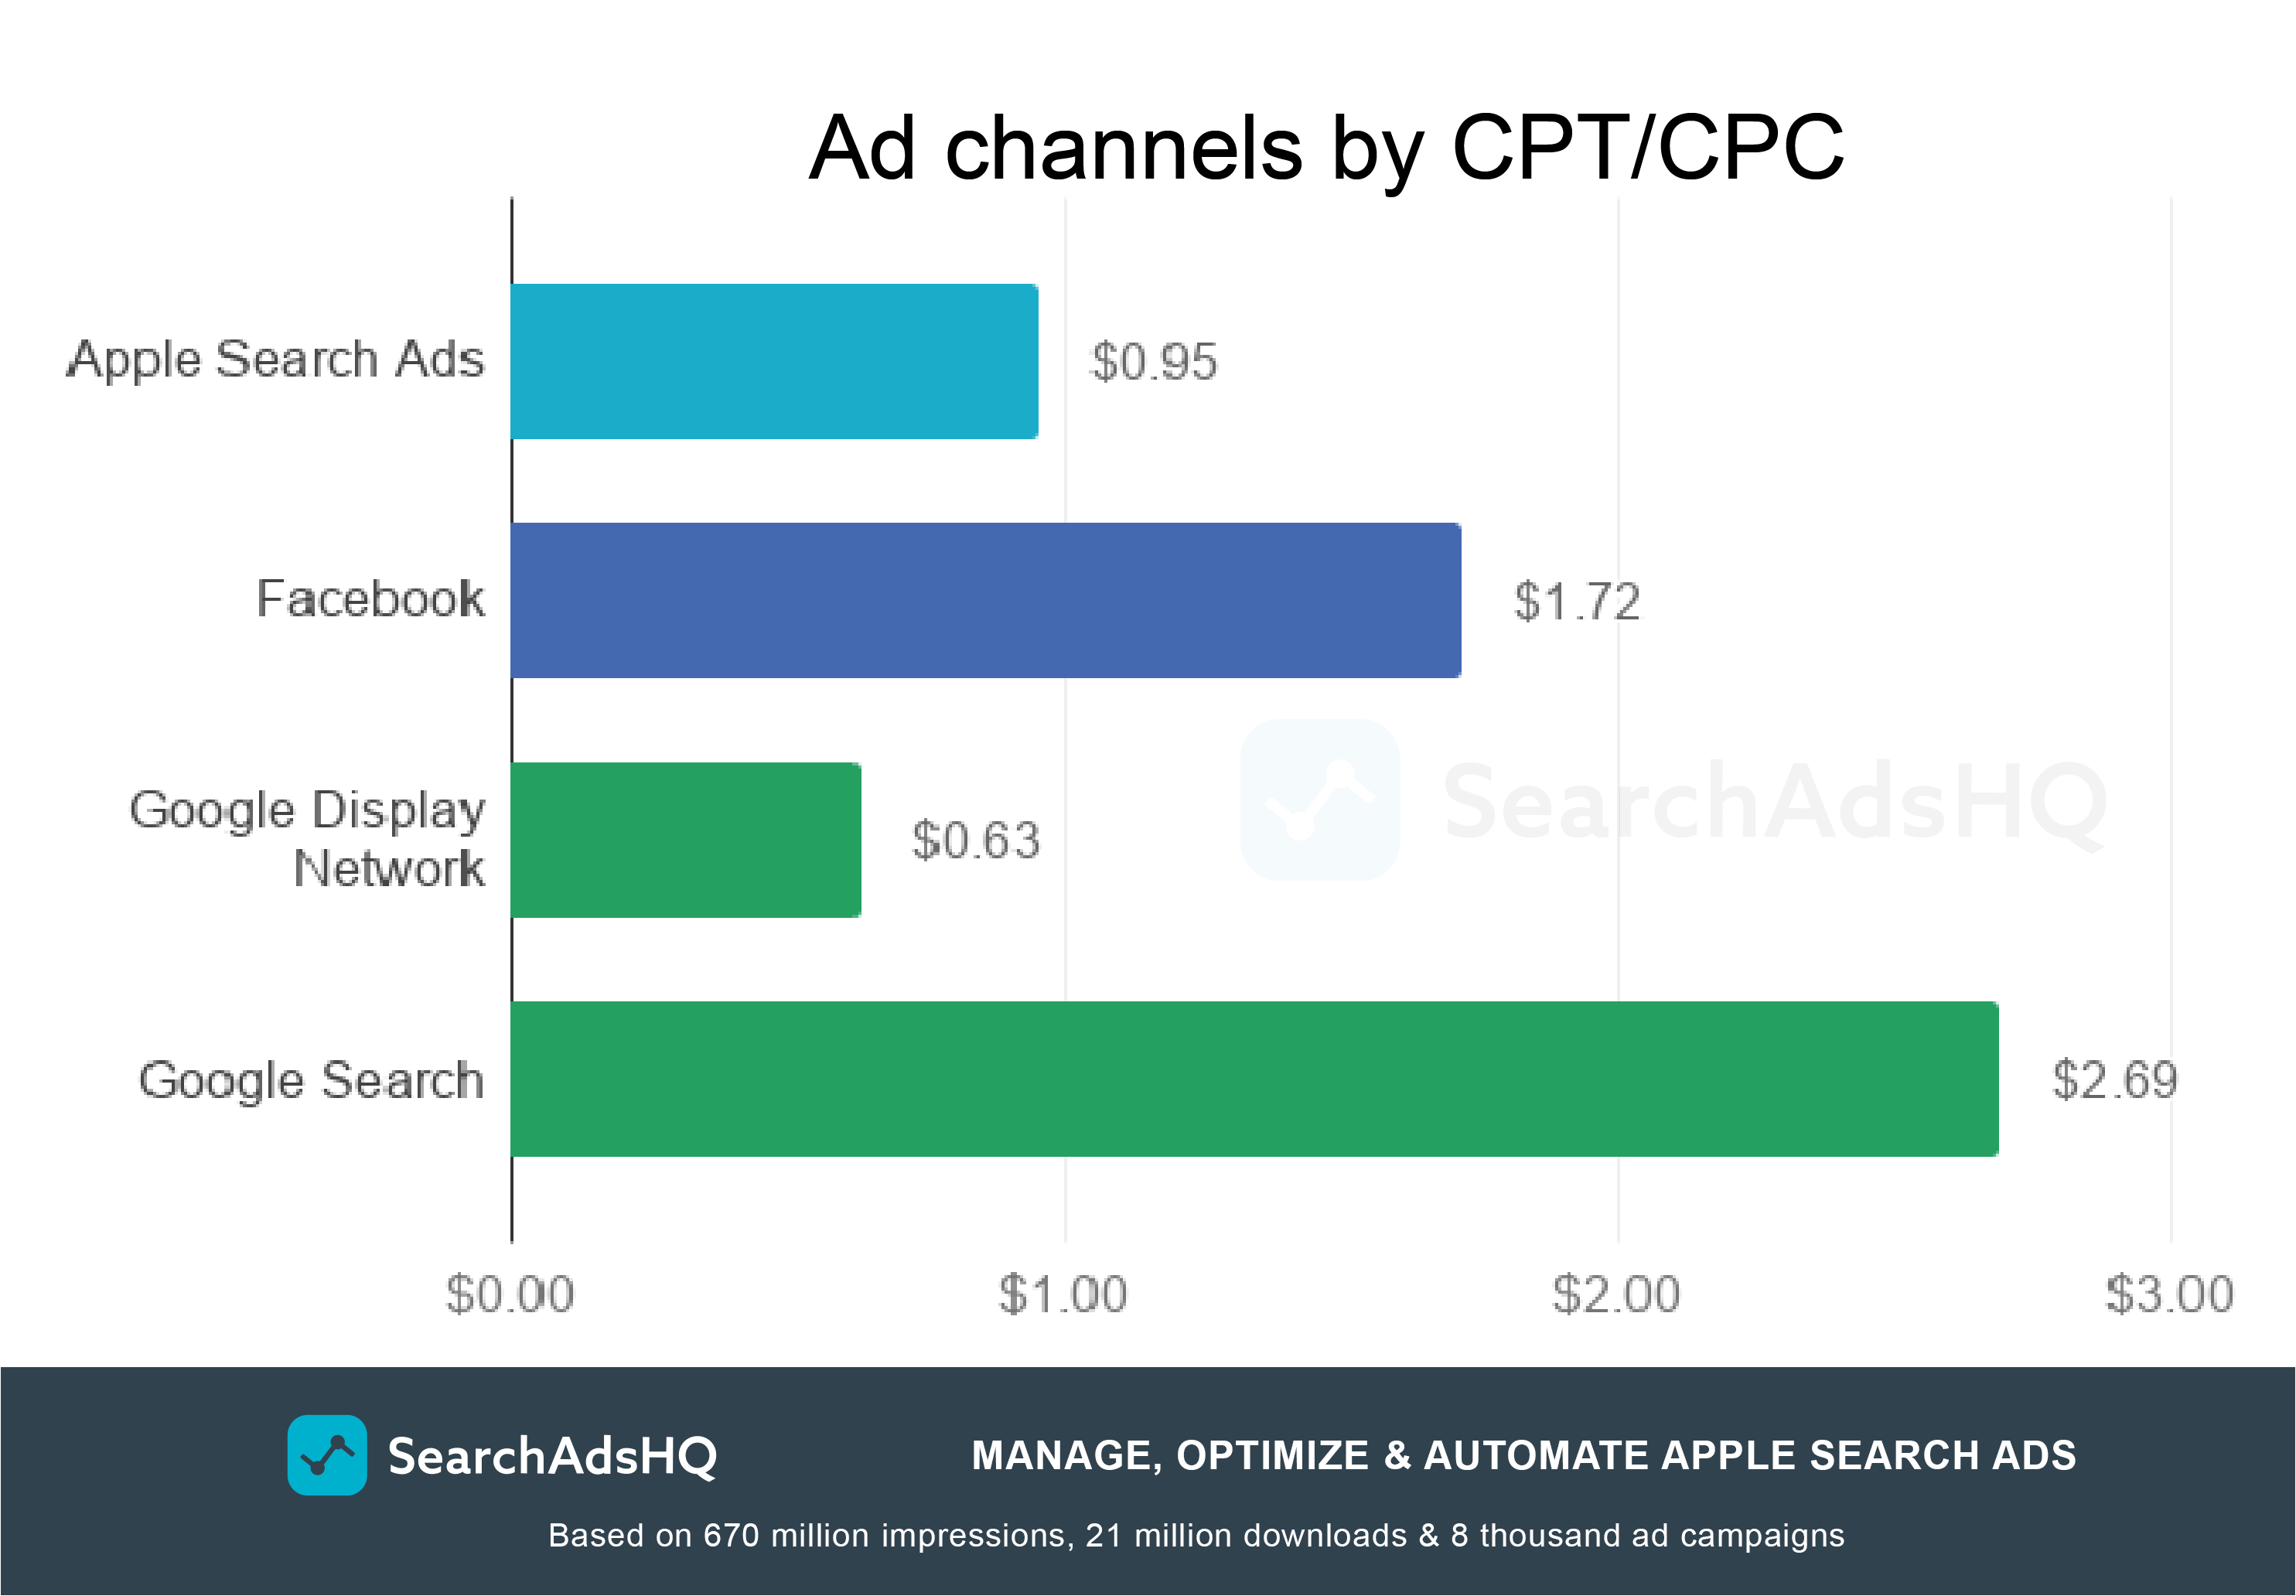 Apple Search Ads benchmarks: CPC/CPT